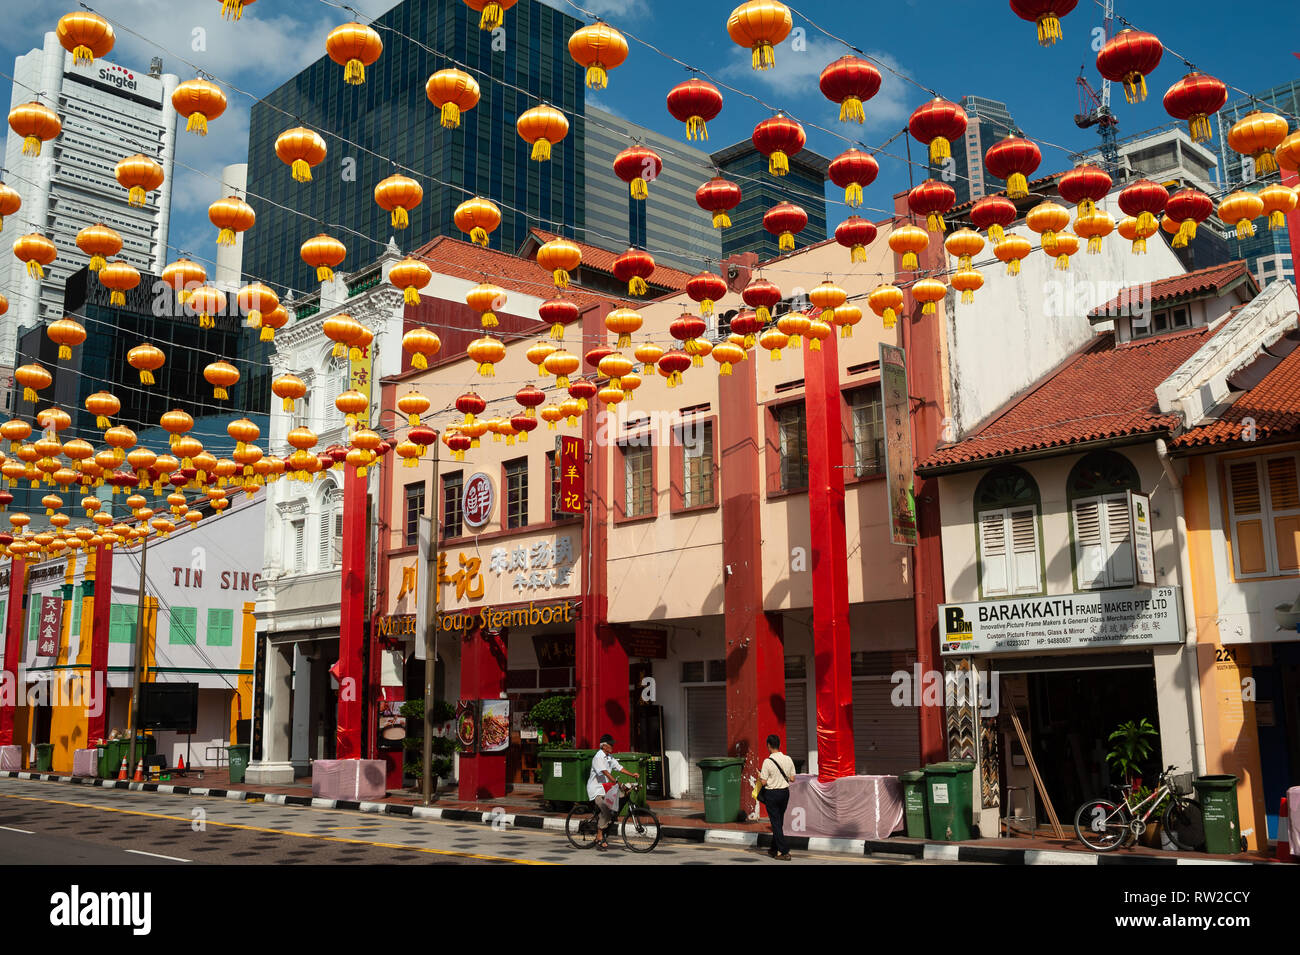 11.02.2019, Singapore, Republic of Singapore, Asia - Annual street decoration with lanterns along South Bridge Road in Chinatown. - Stock Image